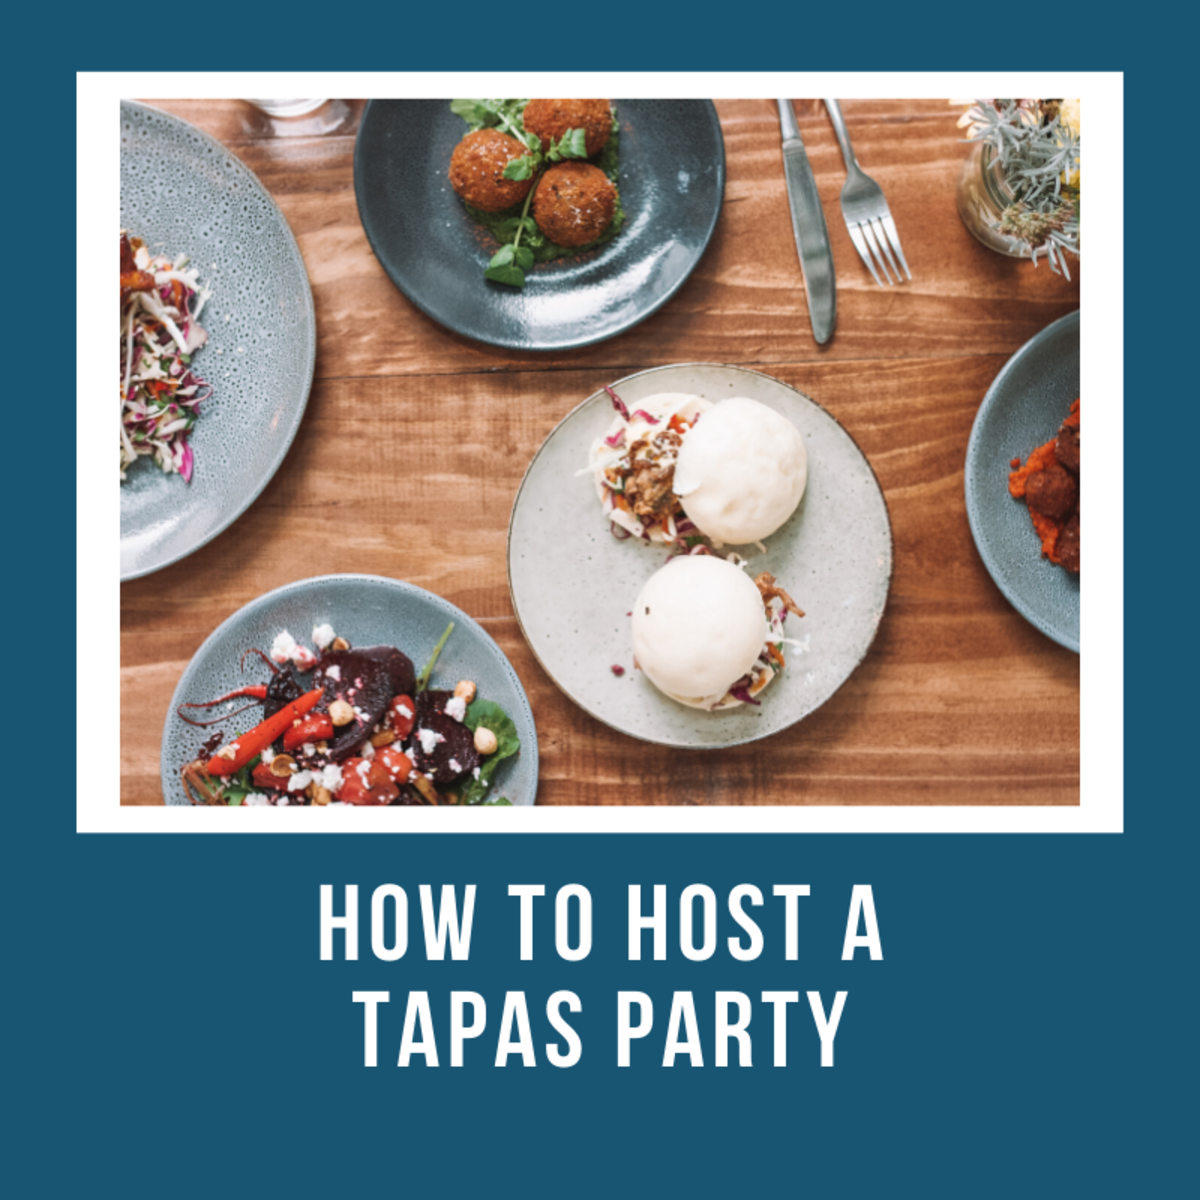 Tapas are great for parties and get-togethers. Here's everything you need to learn about how to host a great tapas party.